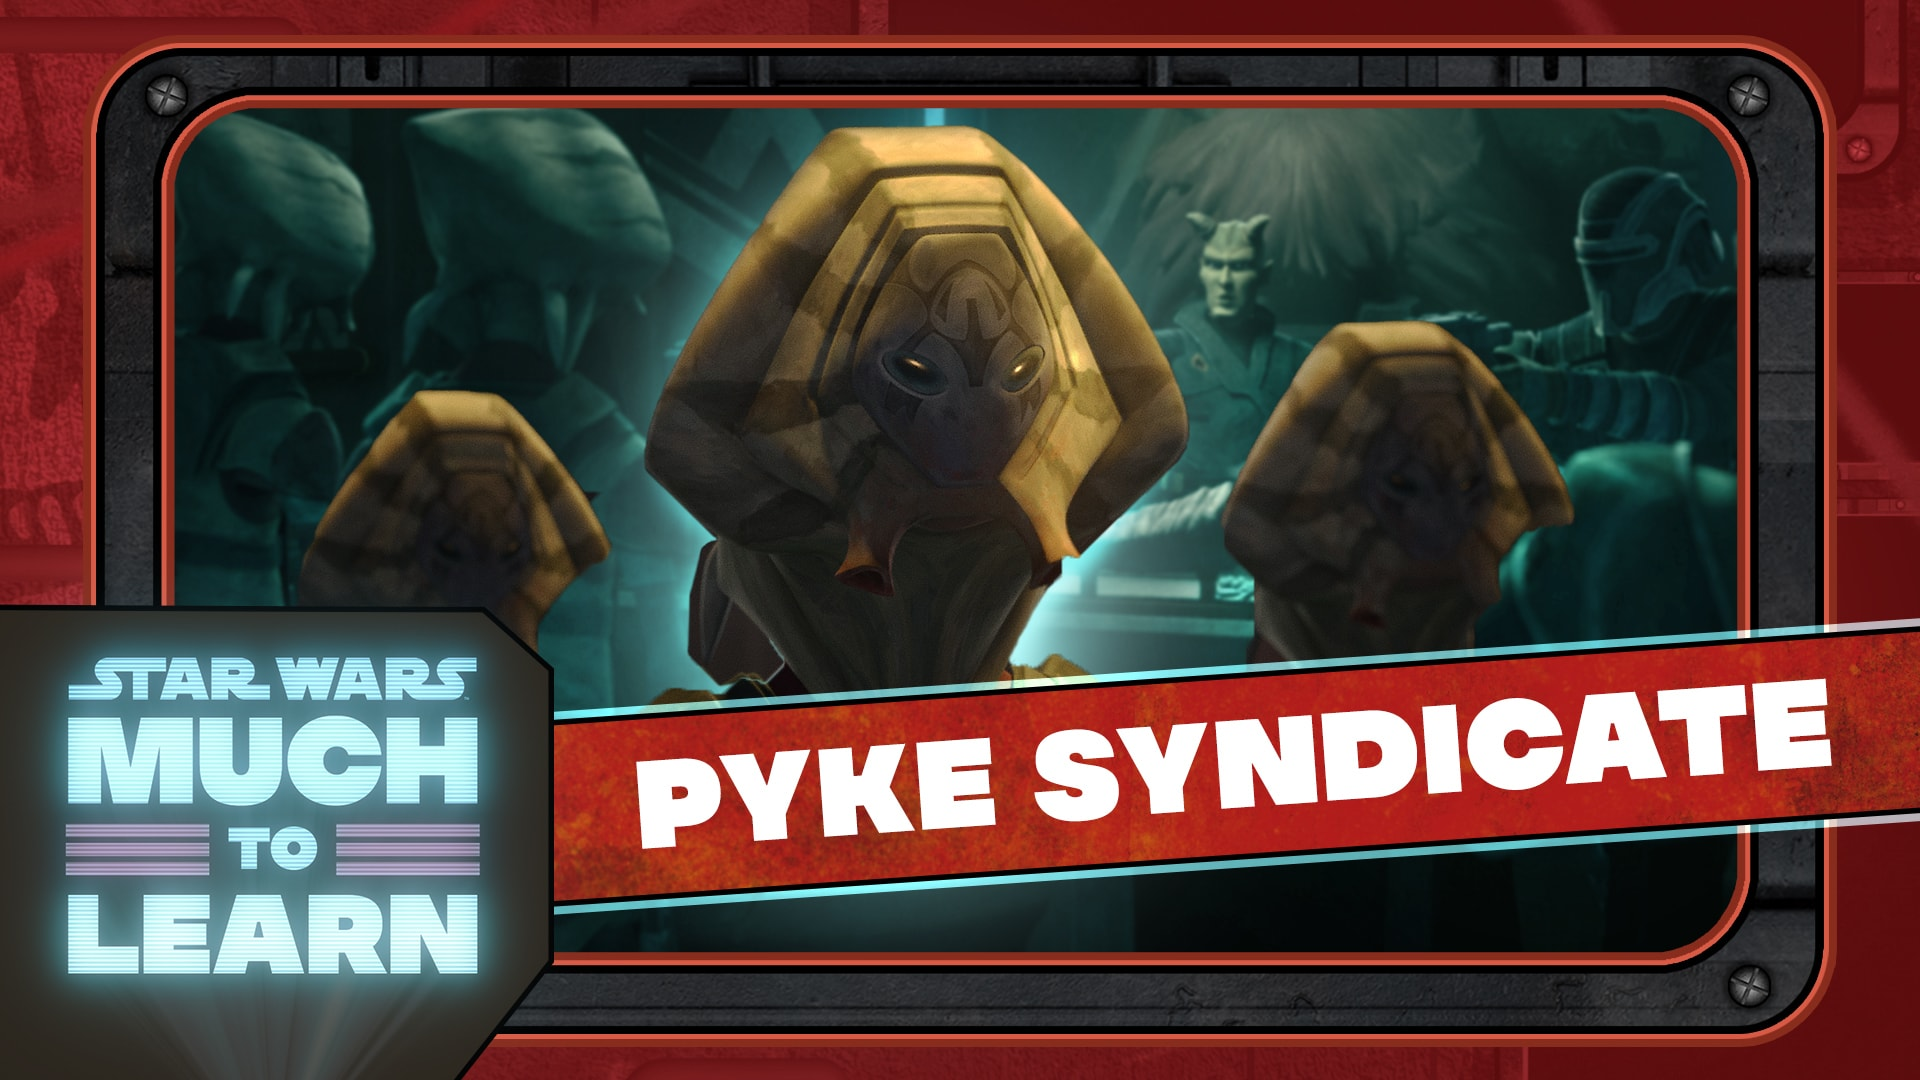 Pyke Syndicate | Star Wars: Much to Learn